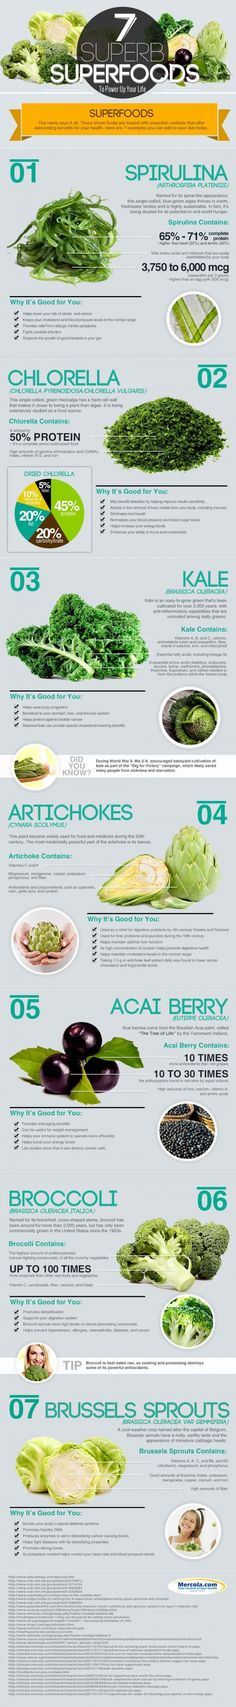 10. 7 #Superb Superfoods to #Power up Your Life - Here Are 40 Superfood… #Infographic